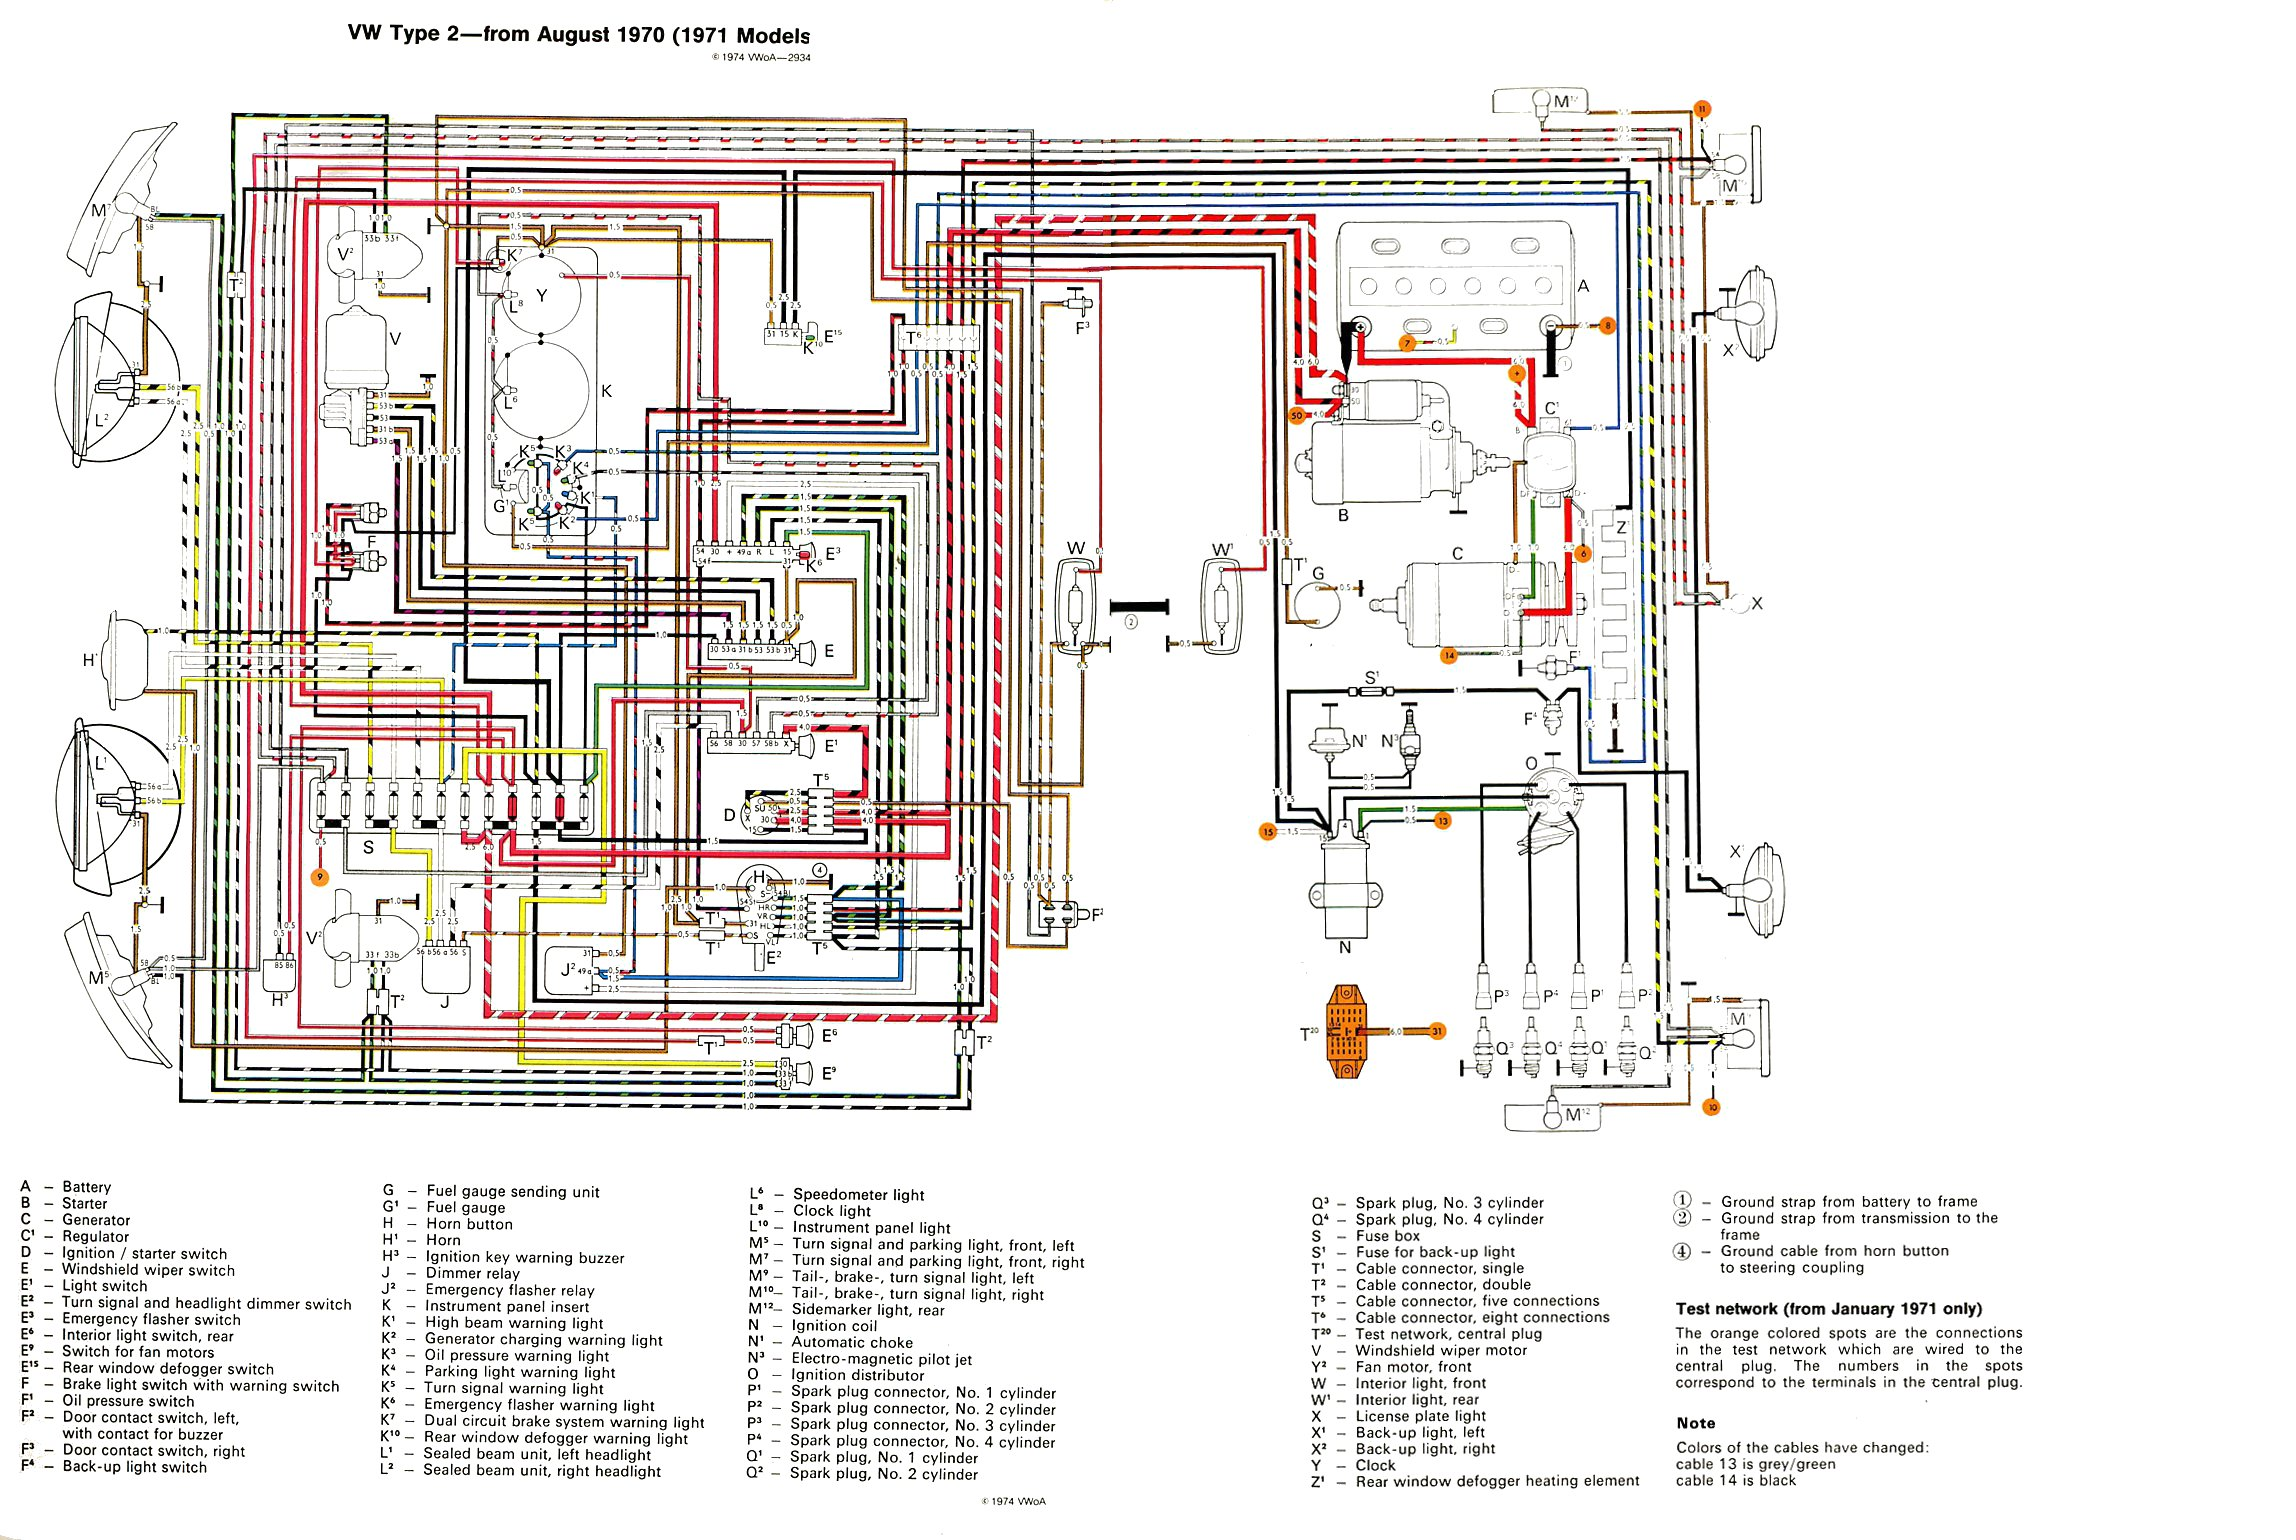 baybus_71 thesamba com type 2 wiring diagrams House Fuse Box Diagram at gsmportal.co